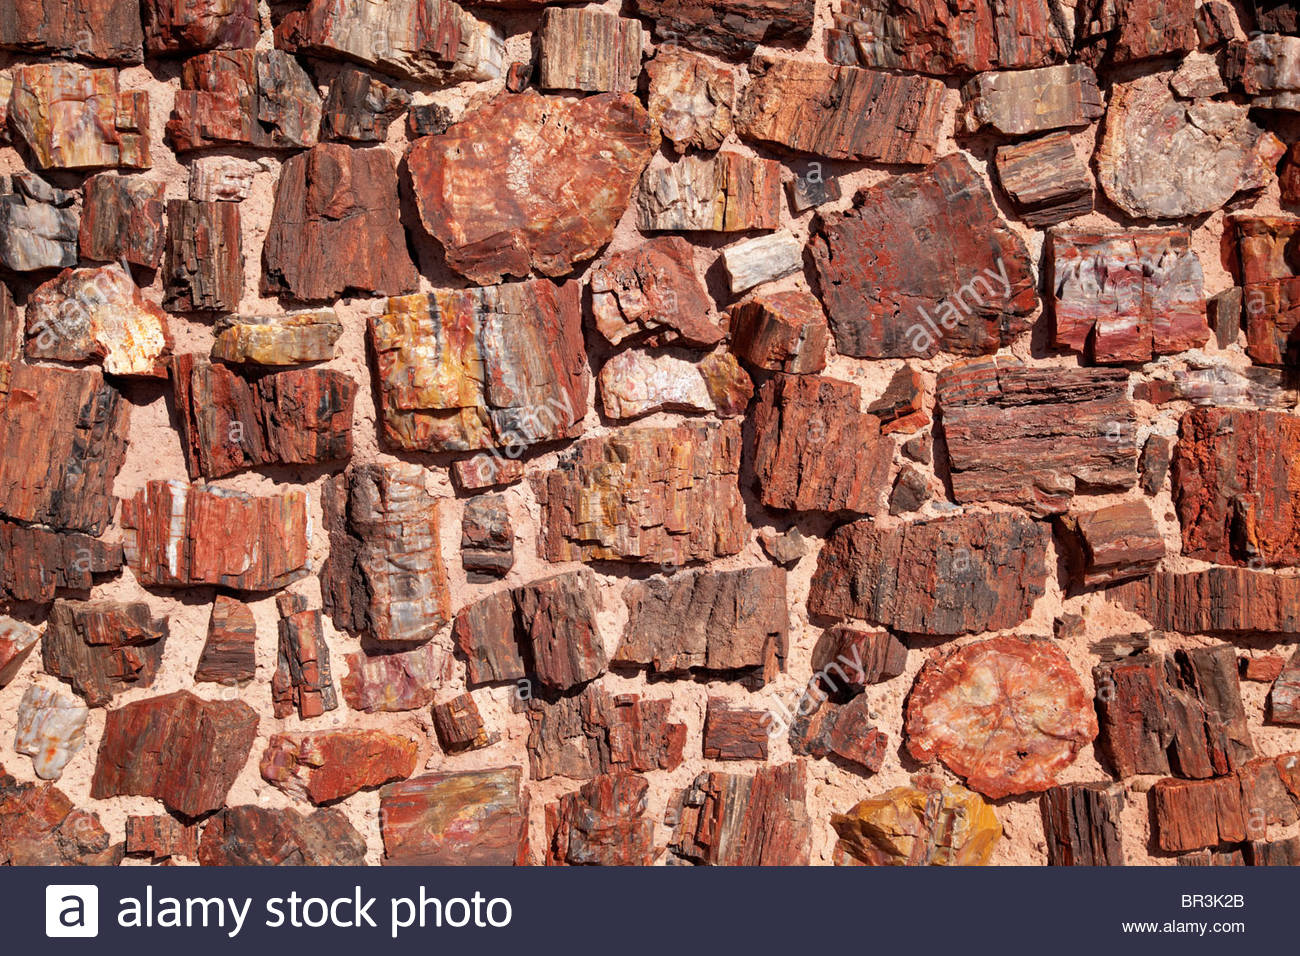 Detail wall built with petrified wood Petrified Forest National Park Arizona - Stock Image